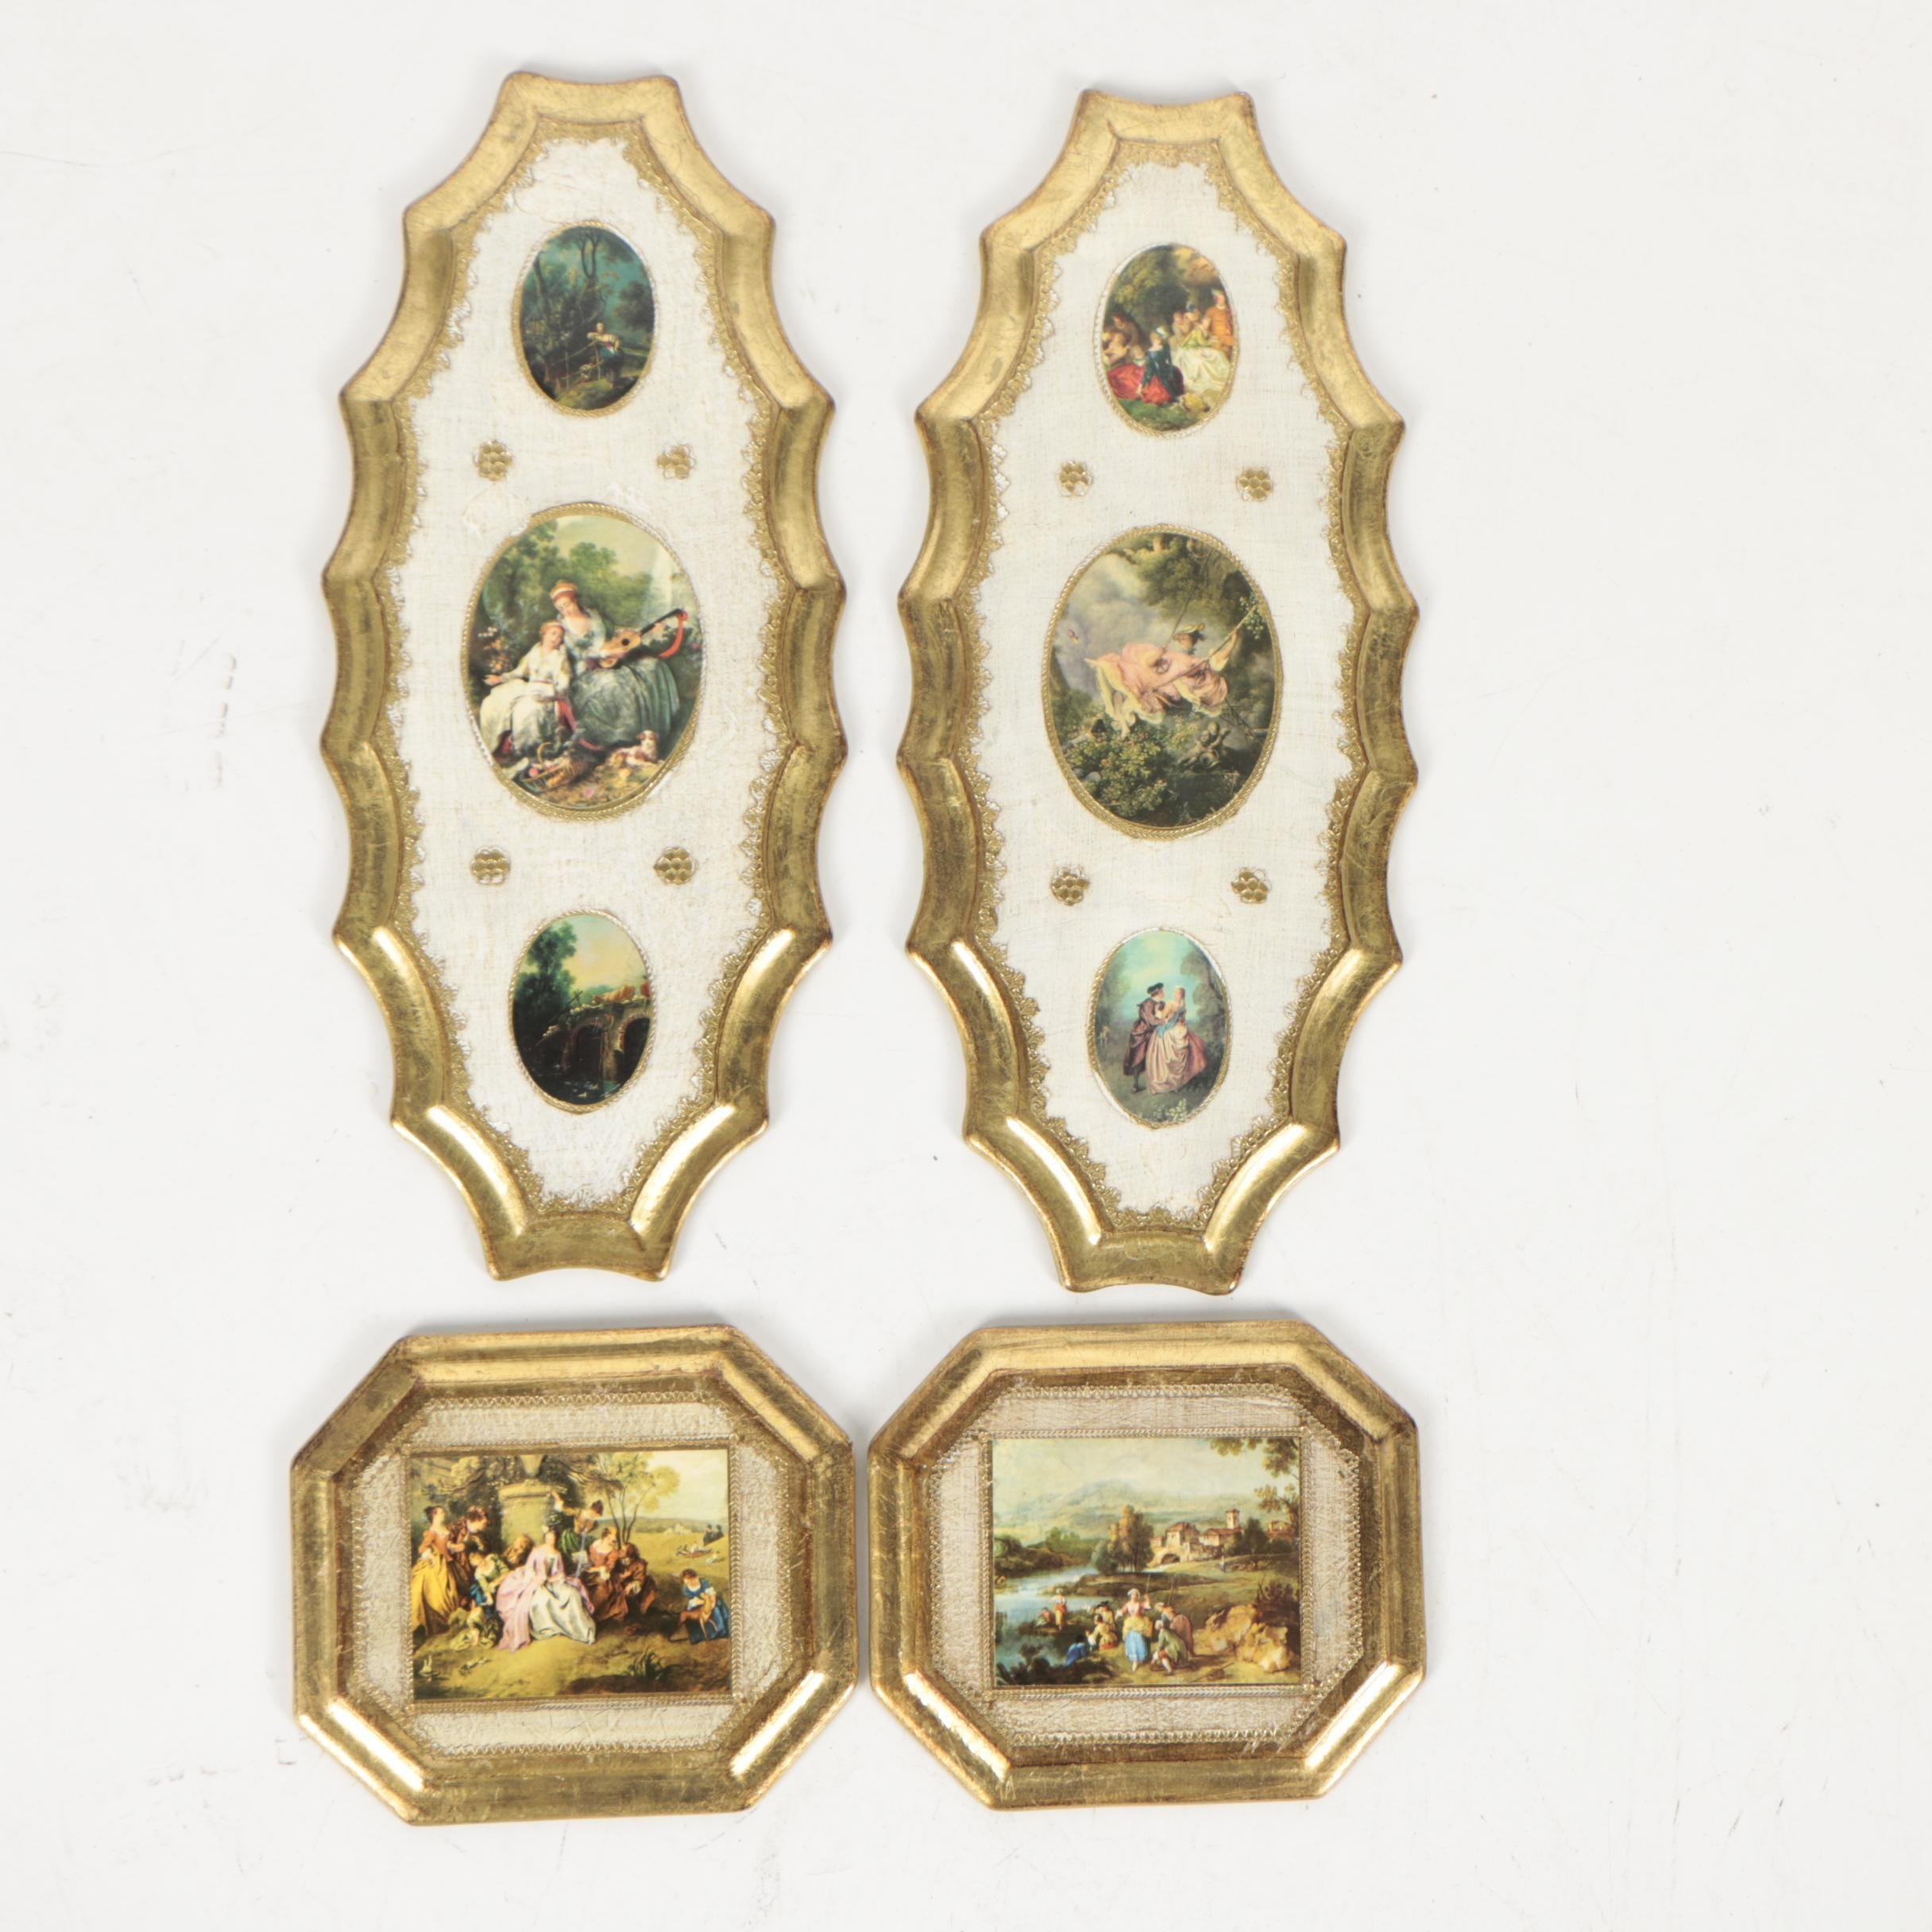 Mid Century Prints After 18th Century Genre Scenes in Decorative Frames